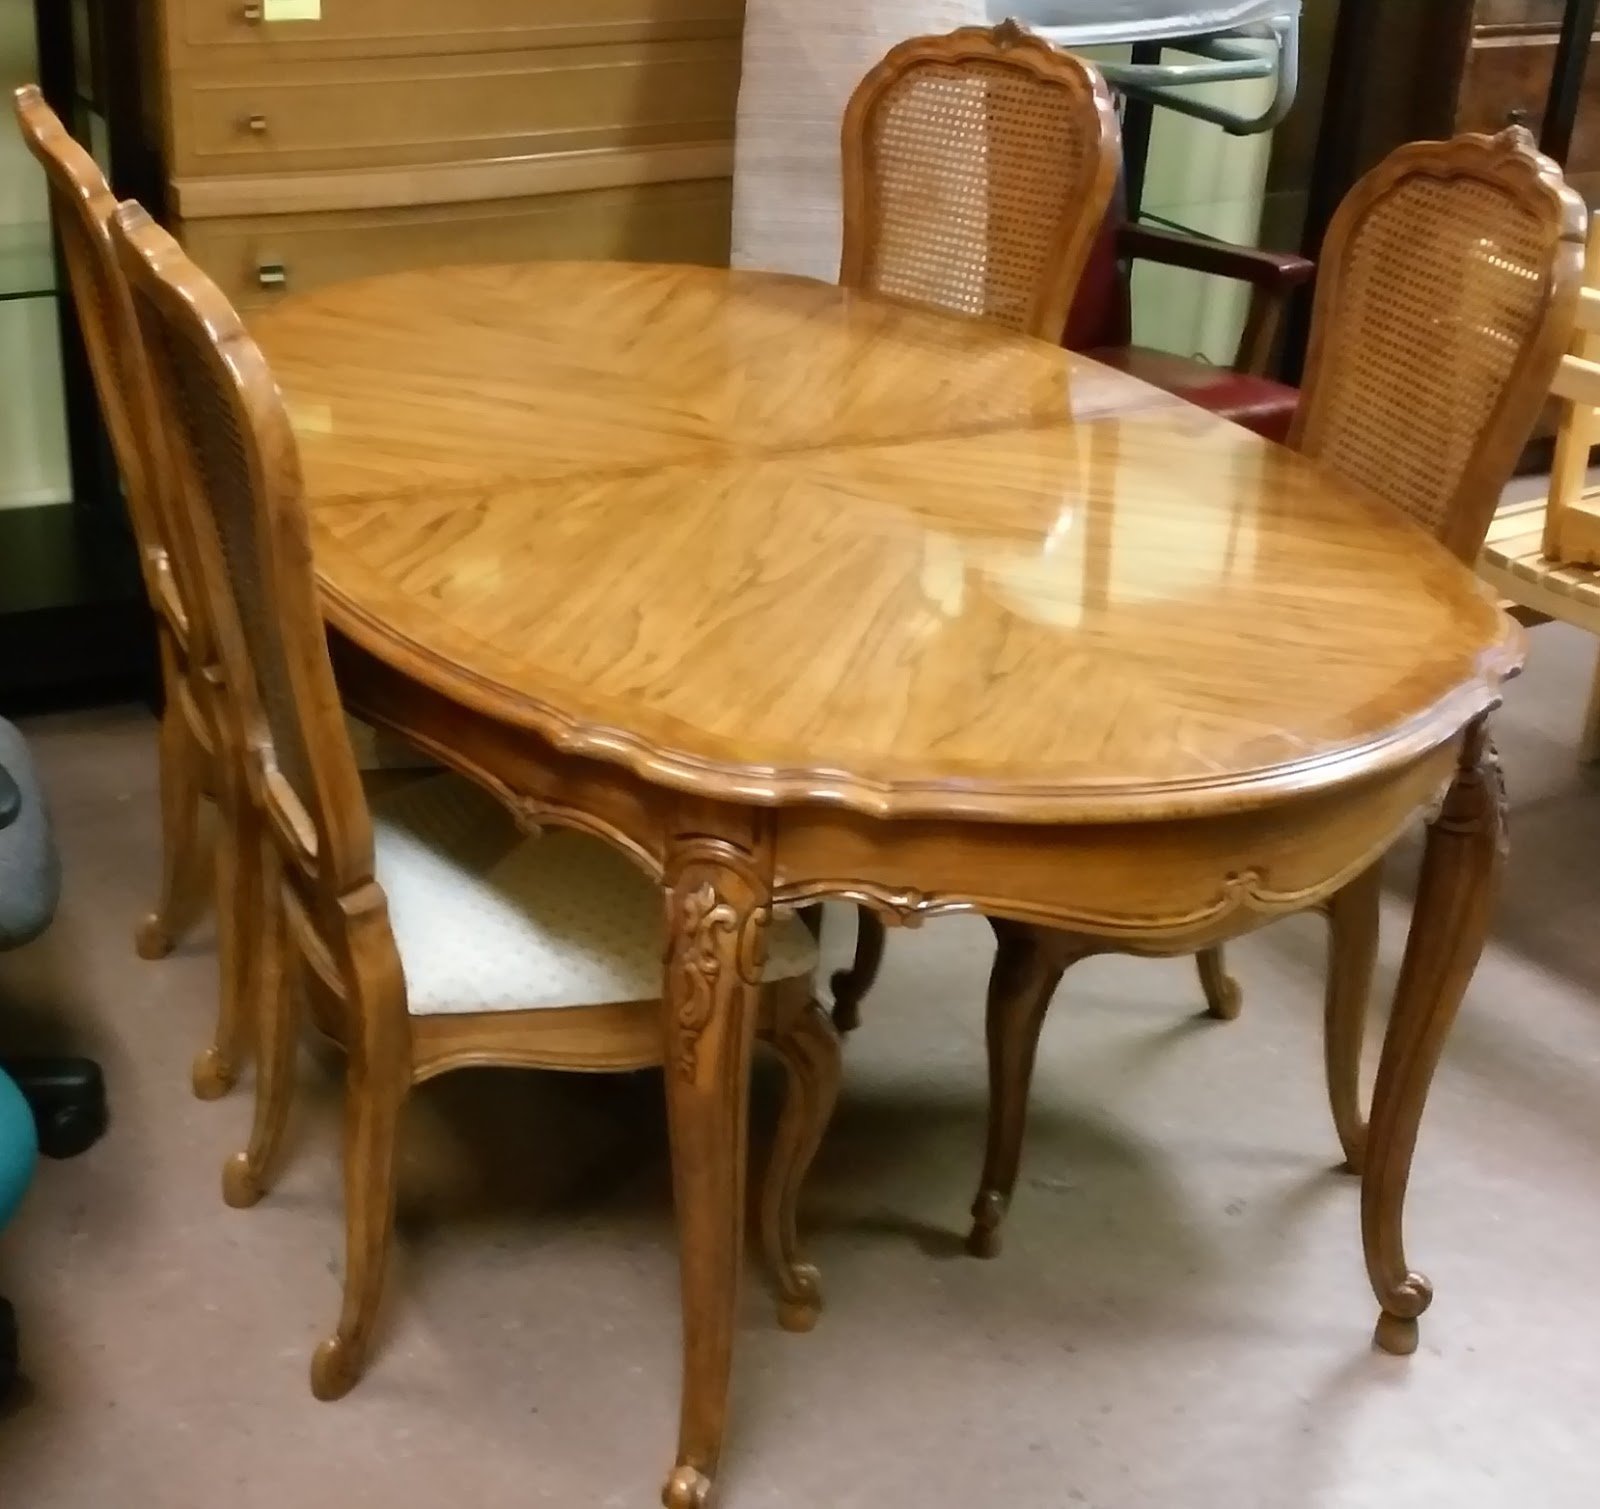 SOLD Thomasville French Provincial Dining Set Tableleaf 4 Chairs